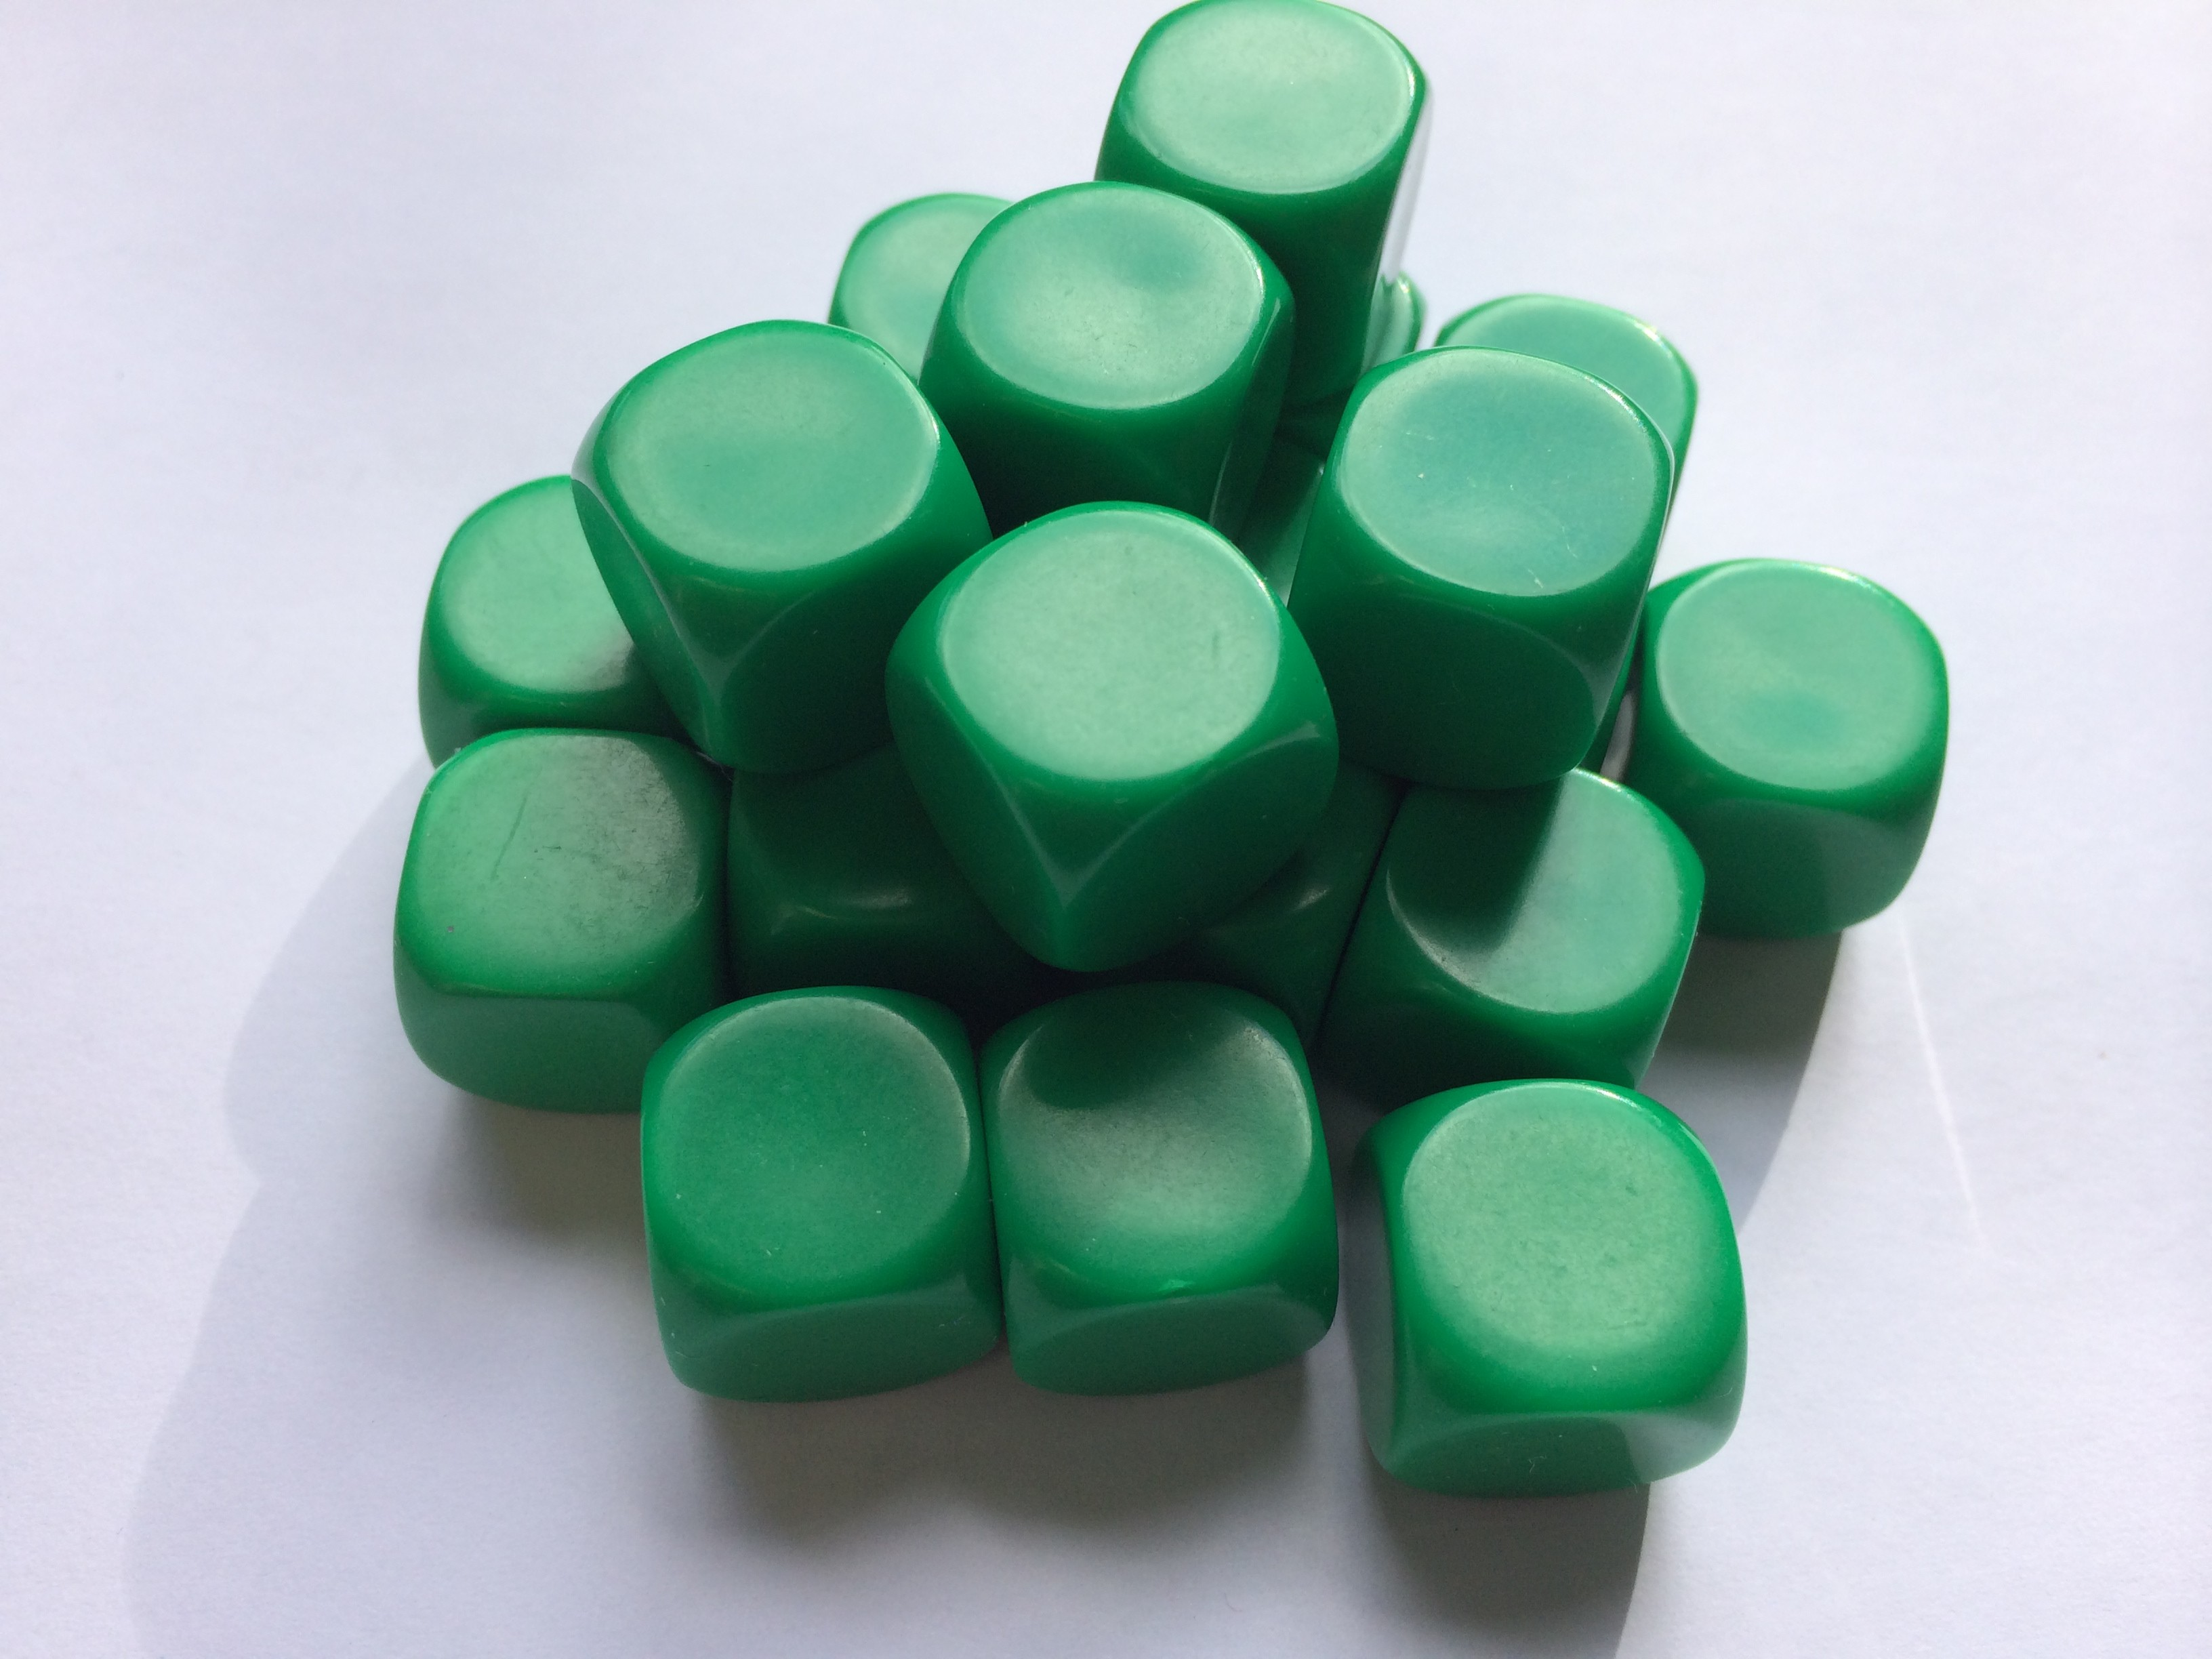 Blank Dice pack of 20 Re-writeable Green